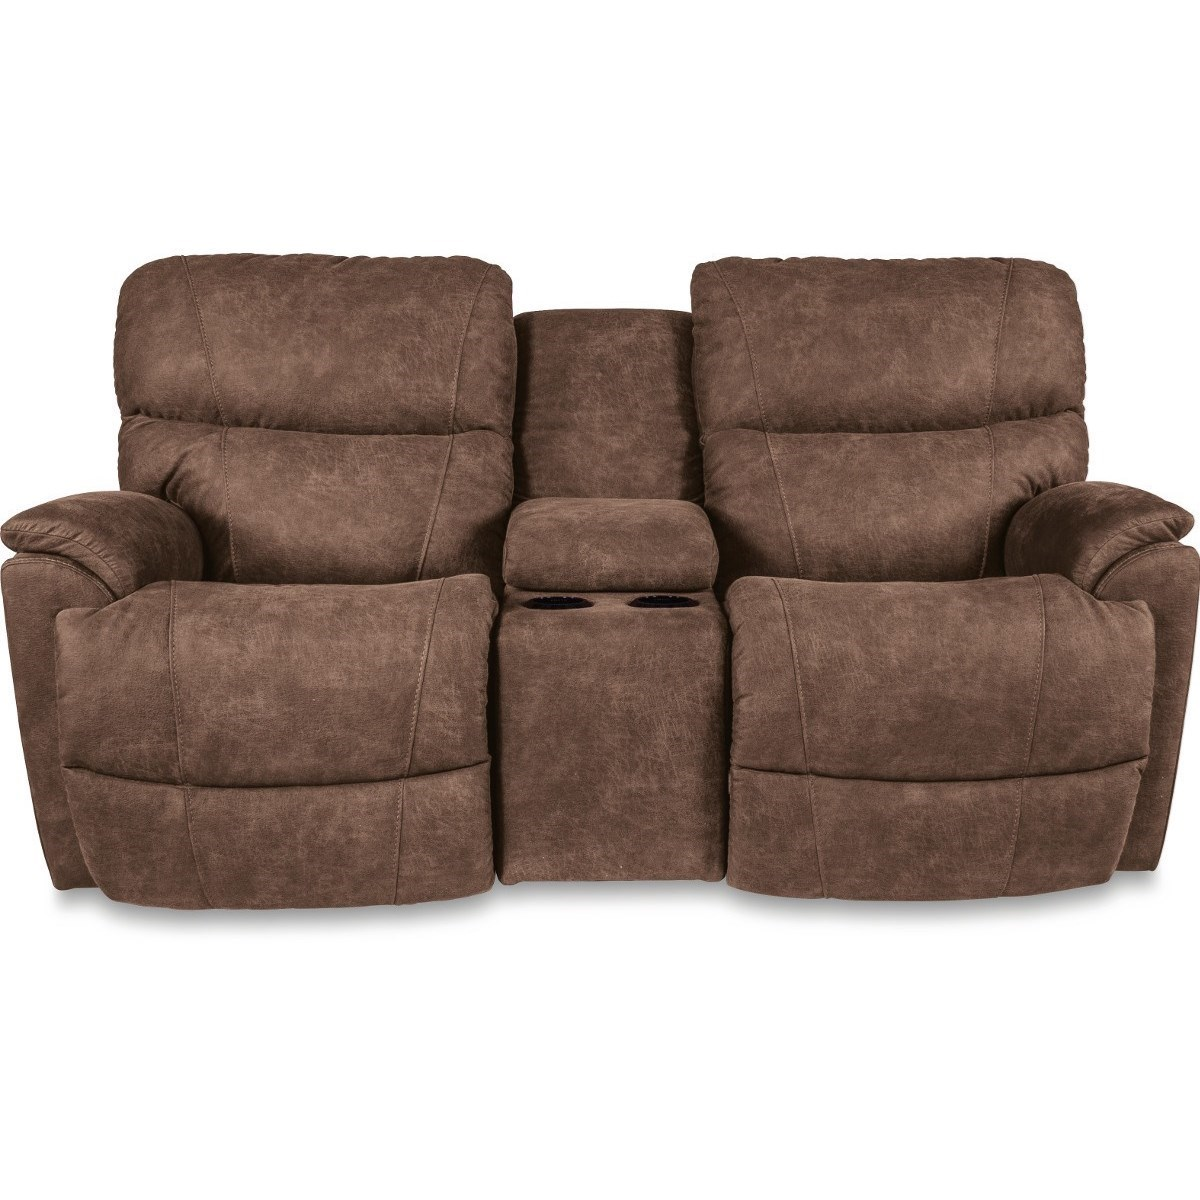 Picture of: La Z Boy Trouper Reclining Loveseat With Cupholder Storage Console Conlin S Furniture Reclining Loveseats